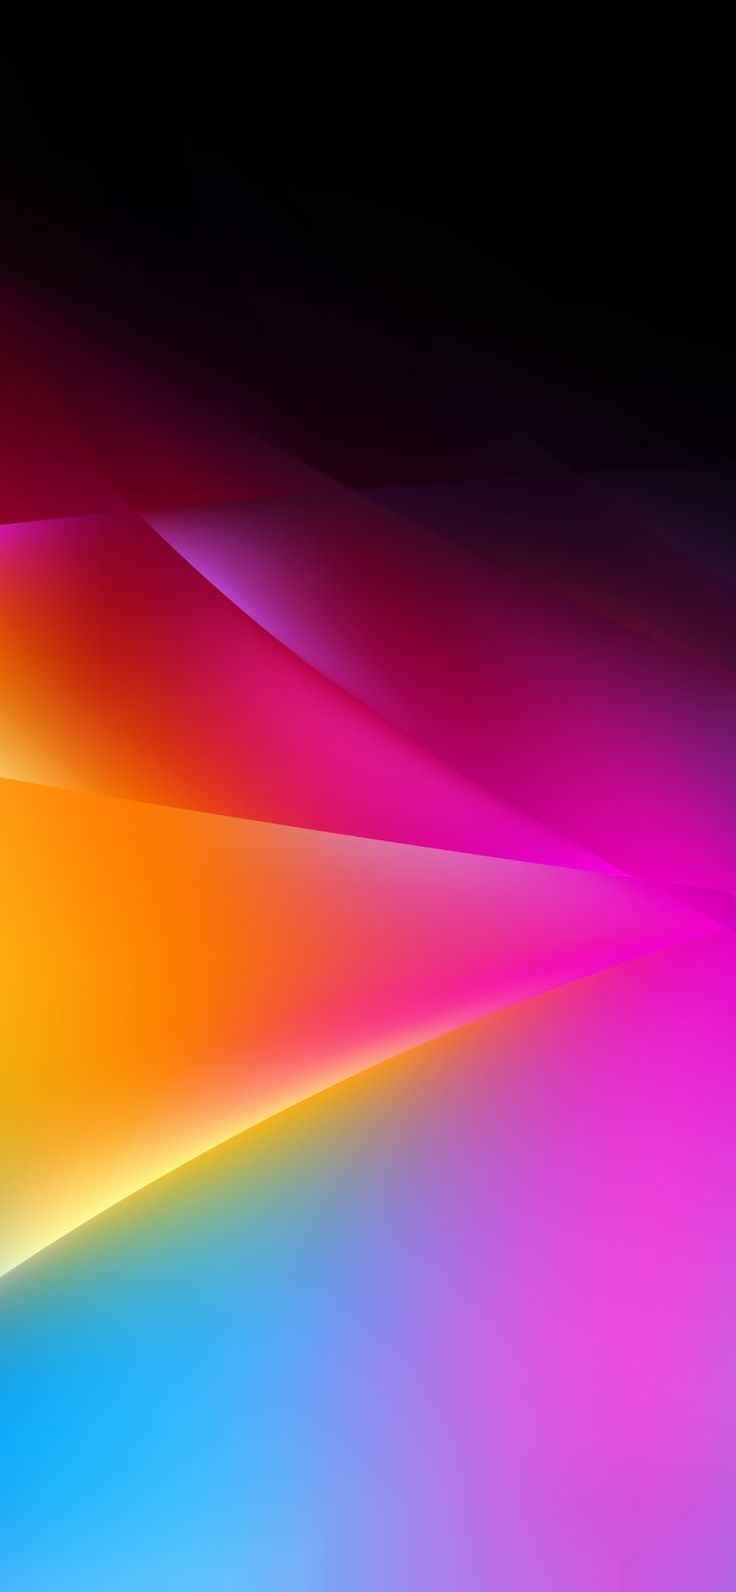 Wallpapers iPhone XR Wallpapers in 2019 Iphone